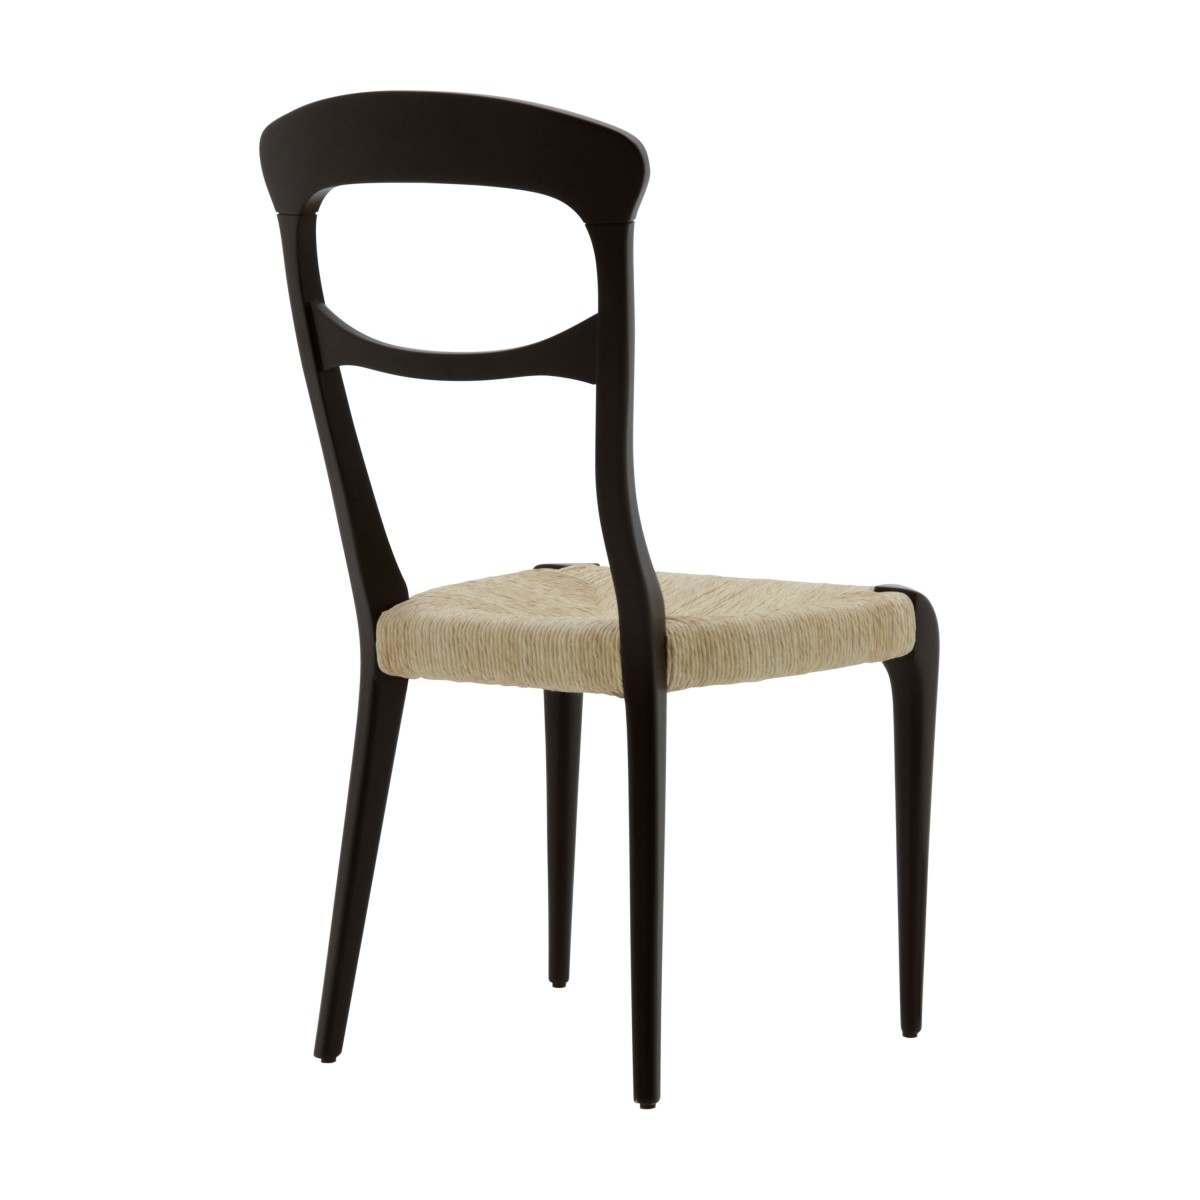 contemporary chair ladyli 1 6477